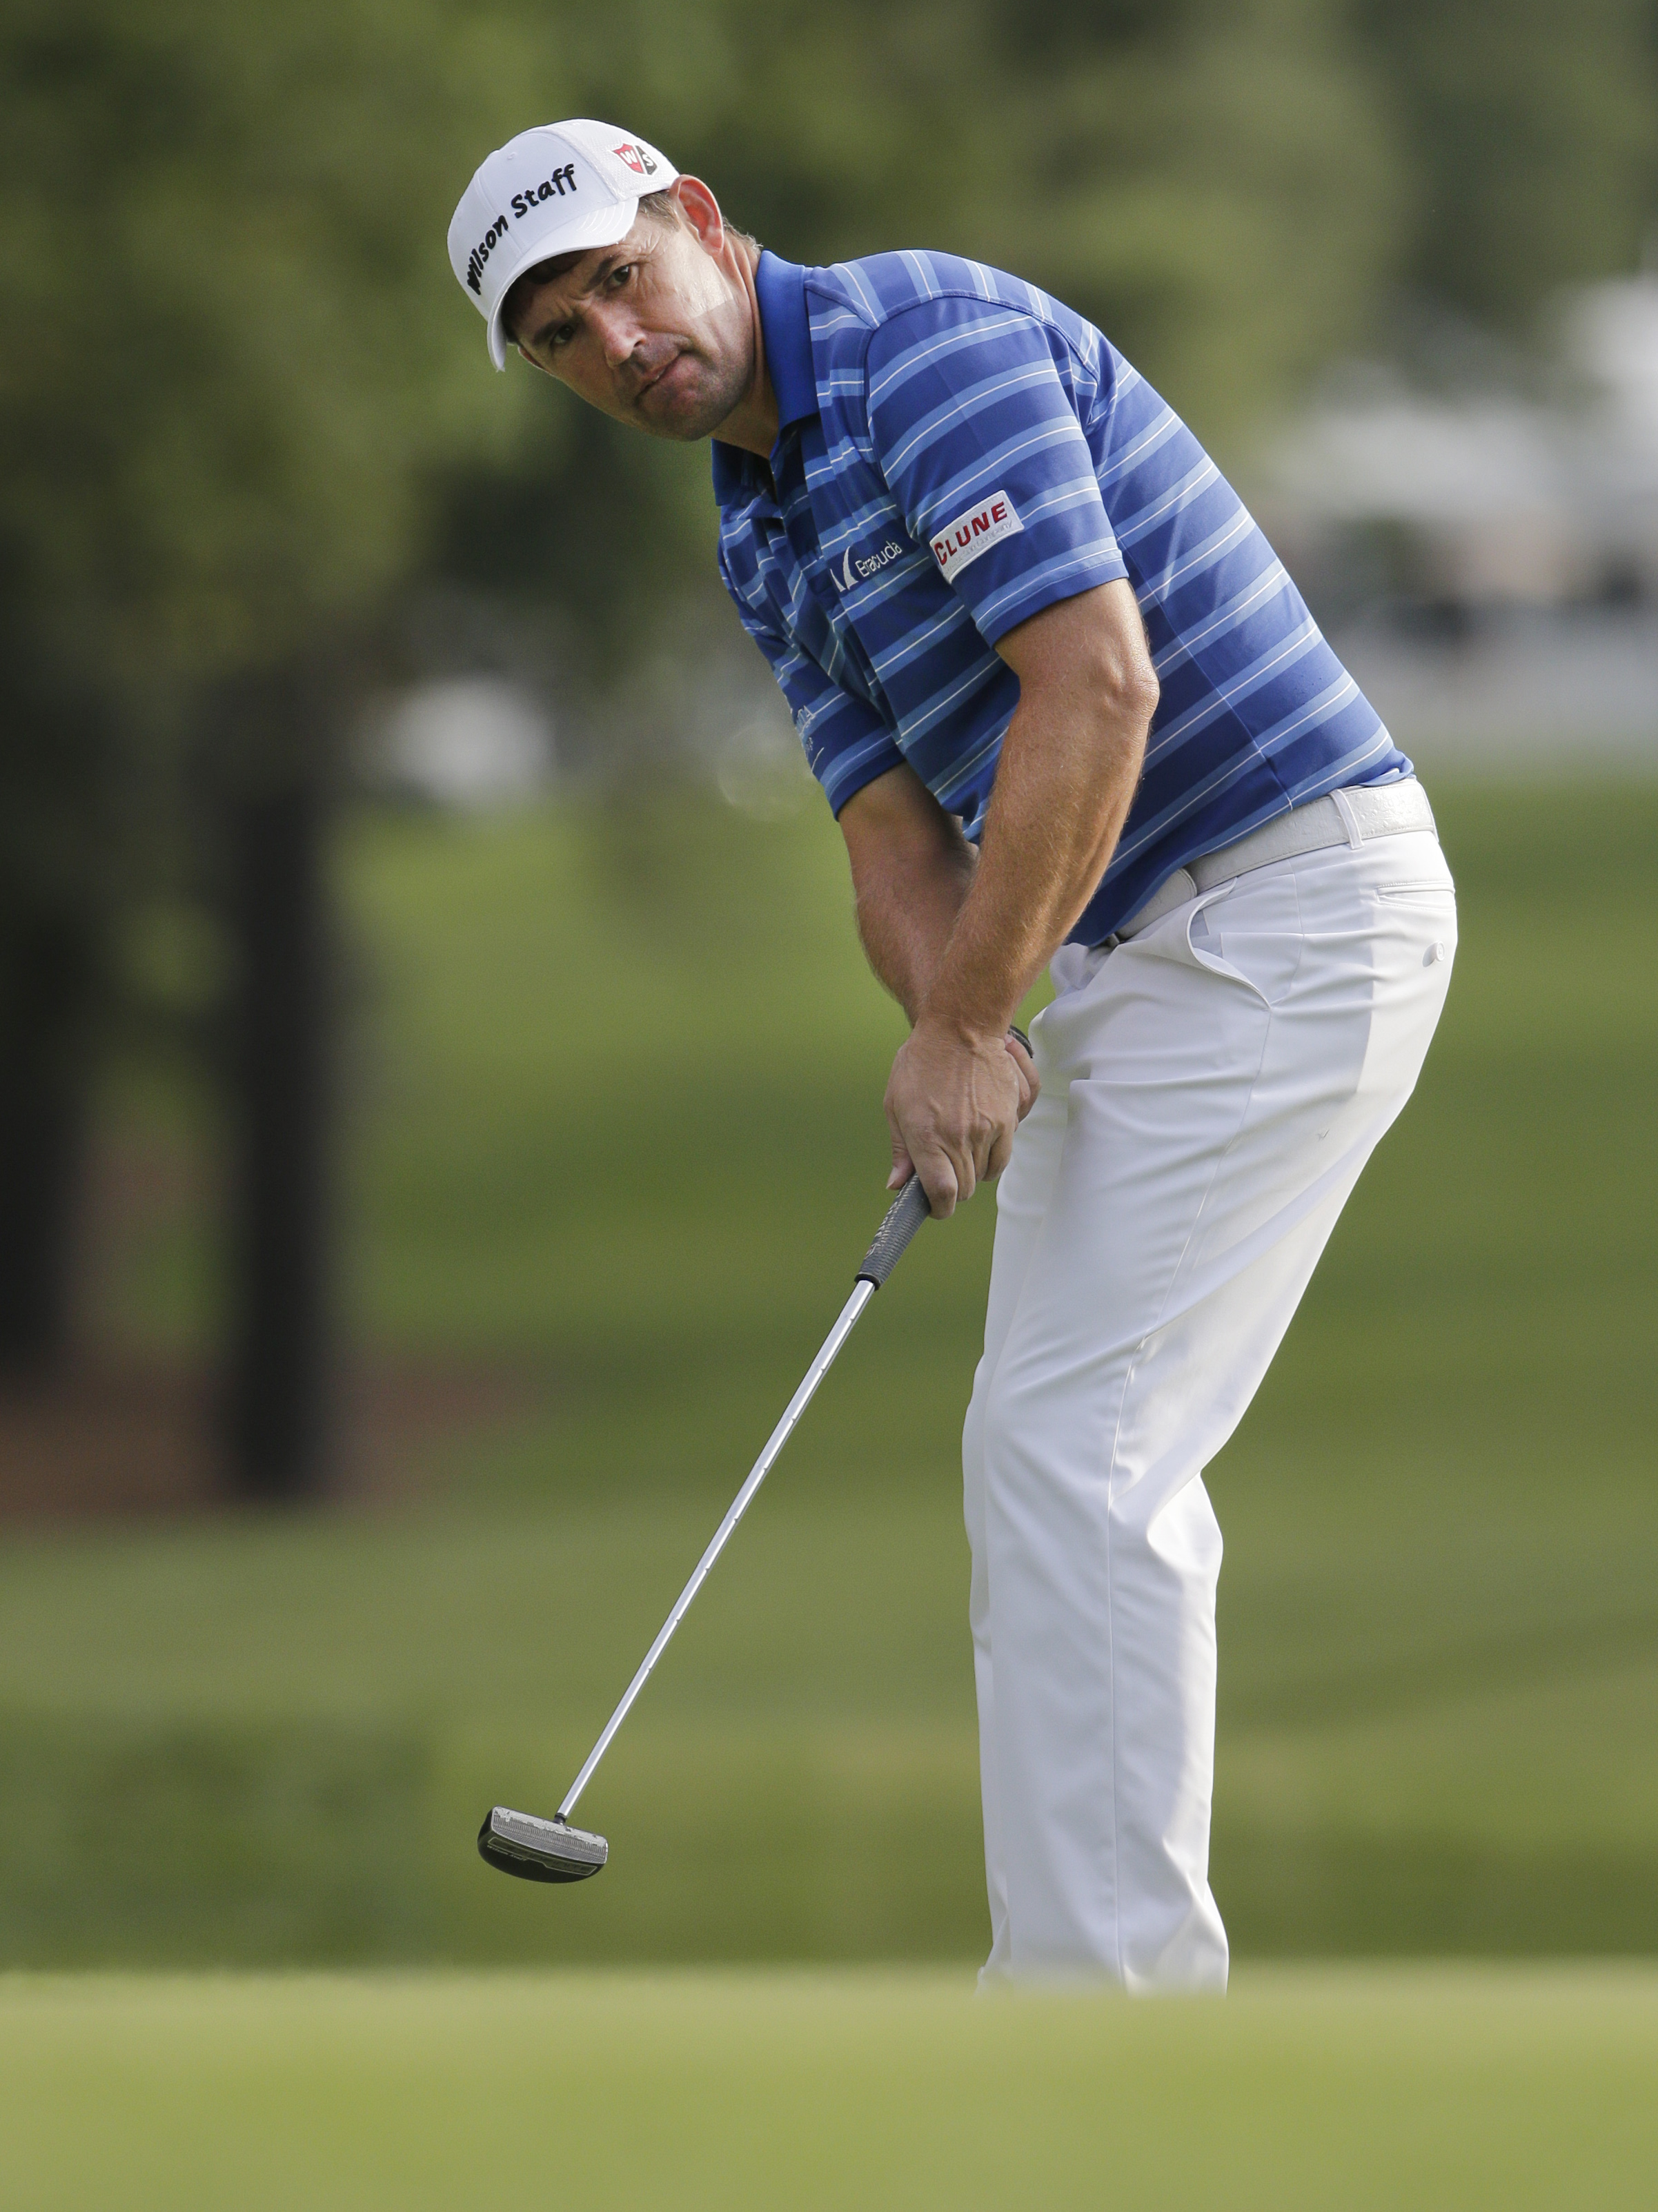 Padraig Harrington, of Ireland, watches his putt on the first hole during the first round of the Wells Fargo Championship golf tournament at Quail Hollow Club in Charlotte, N.C., Thursday, May 14, 2015. (AP Photo/Chuck Burton)